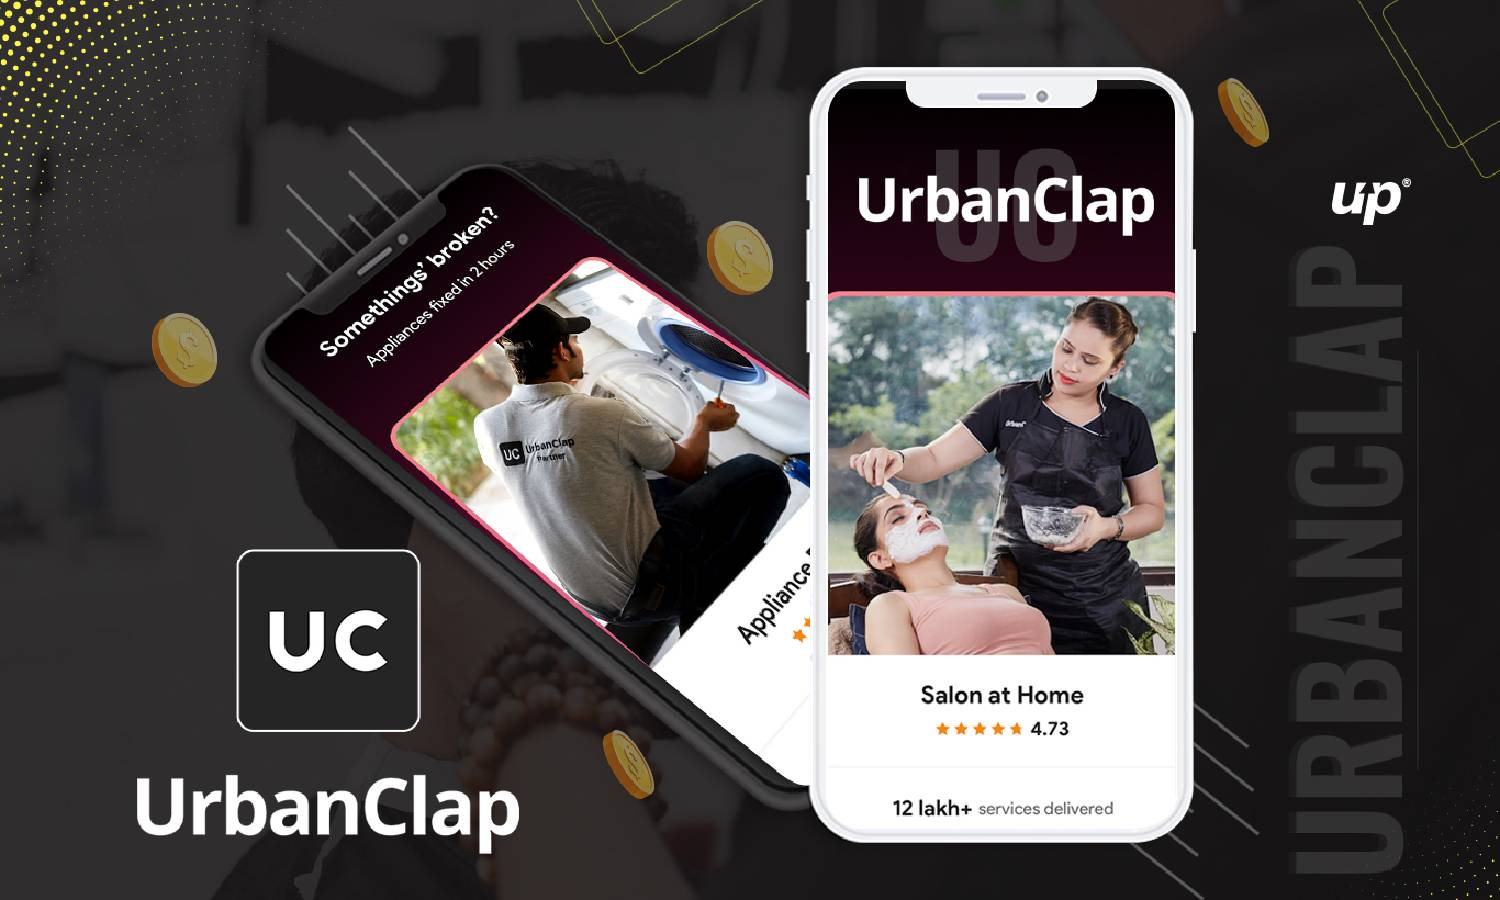 How Much Does it Cost to develop an app like Urbanclap